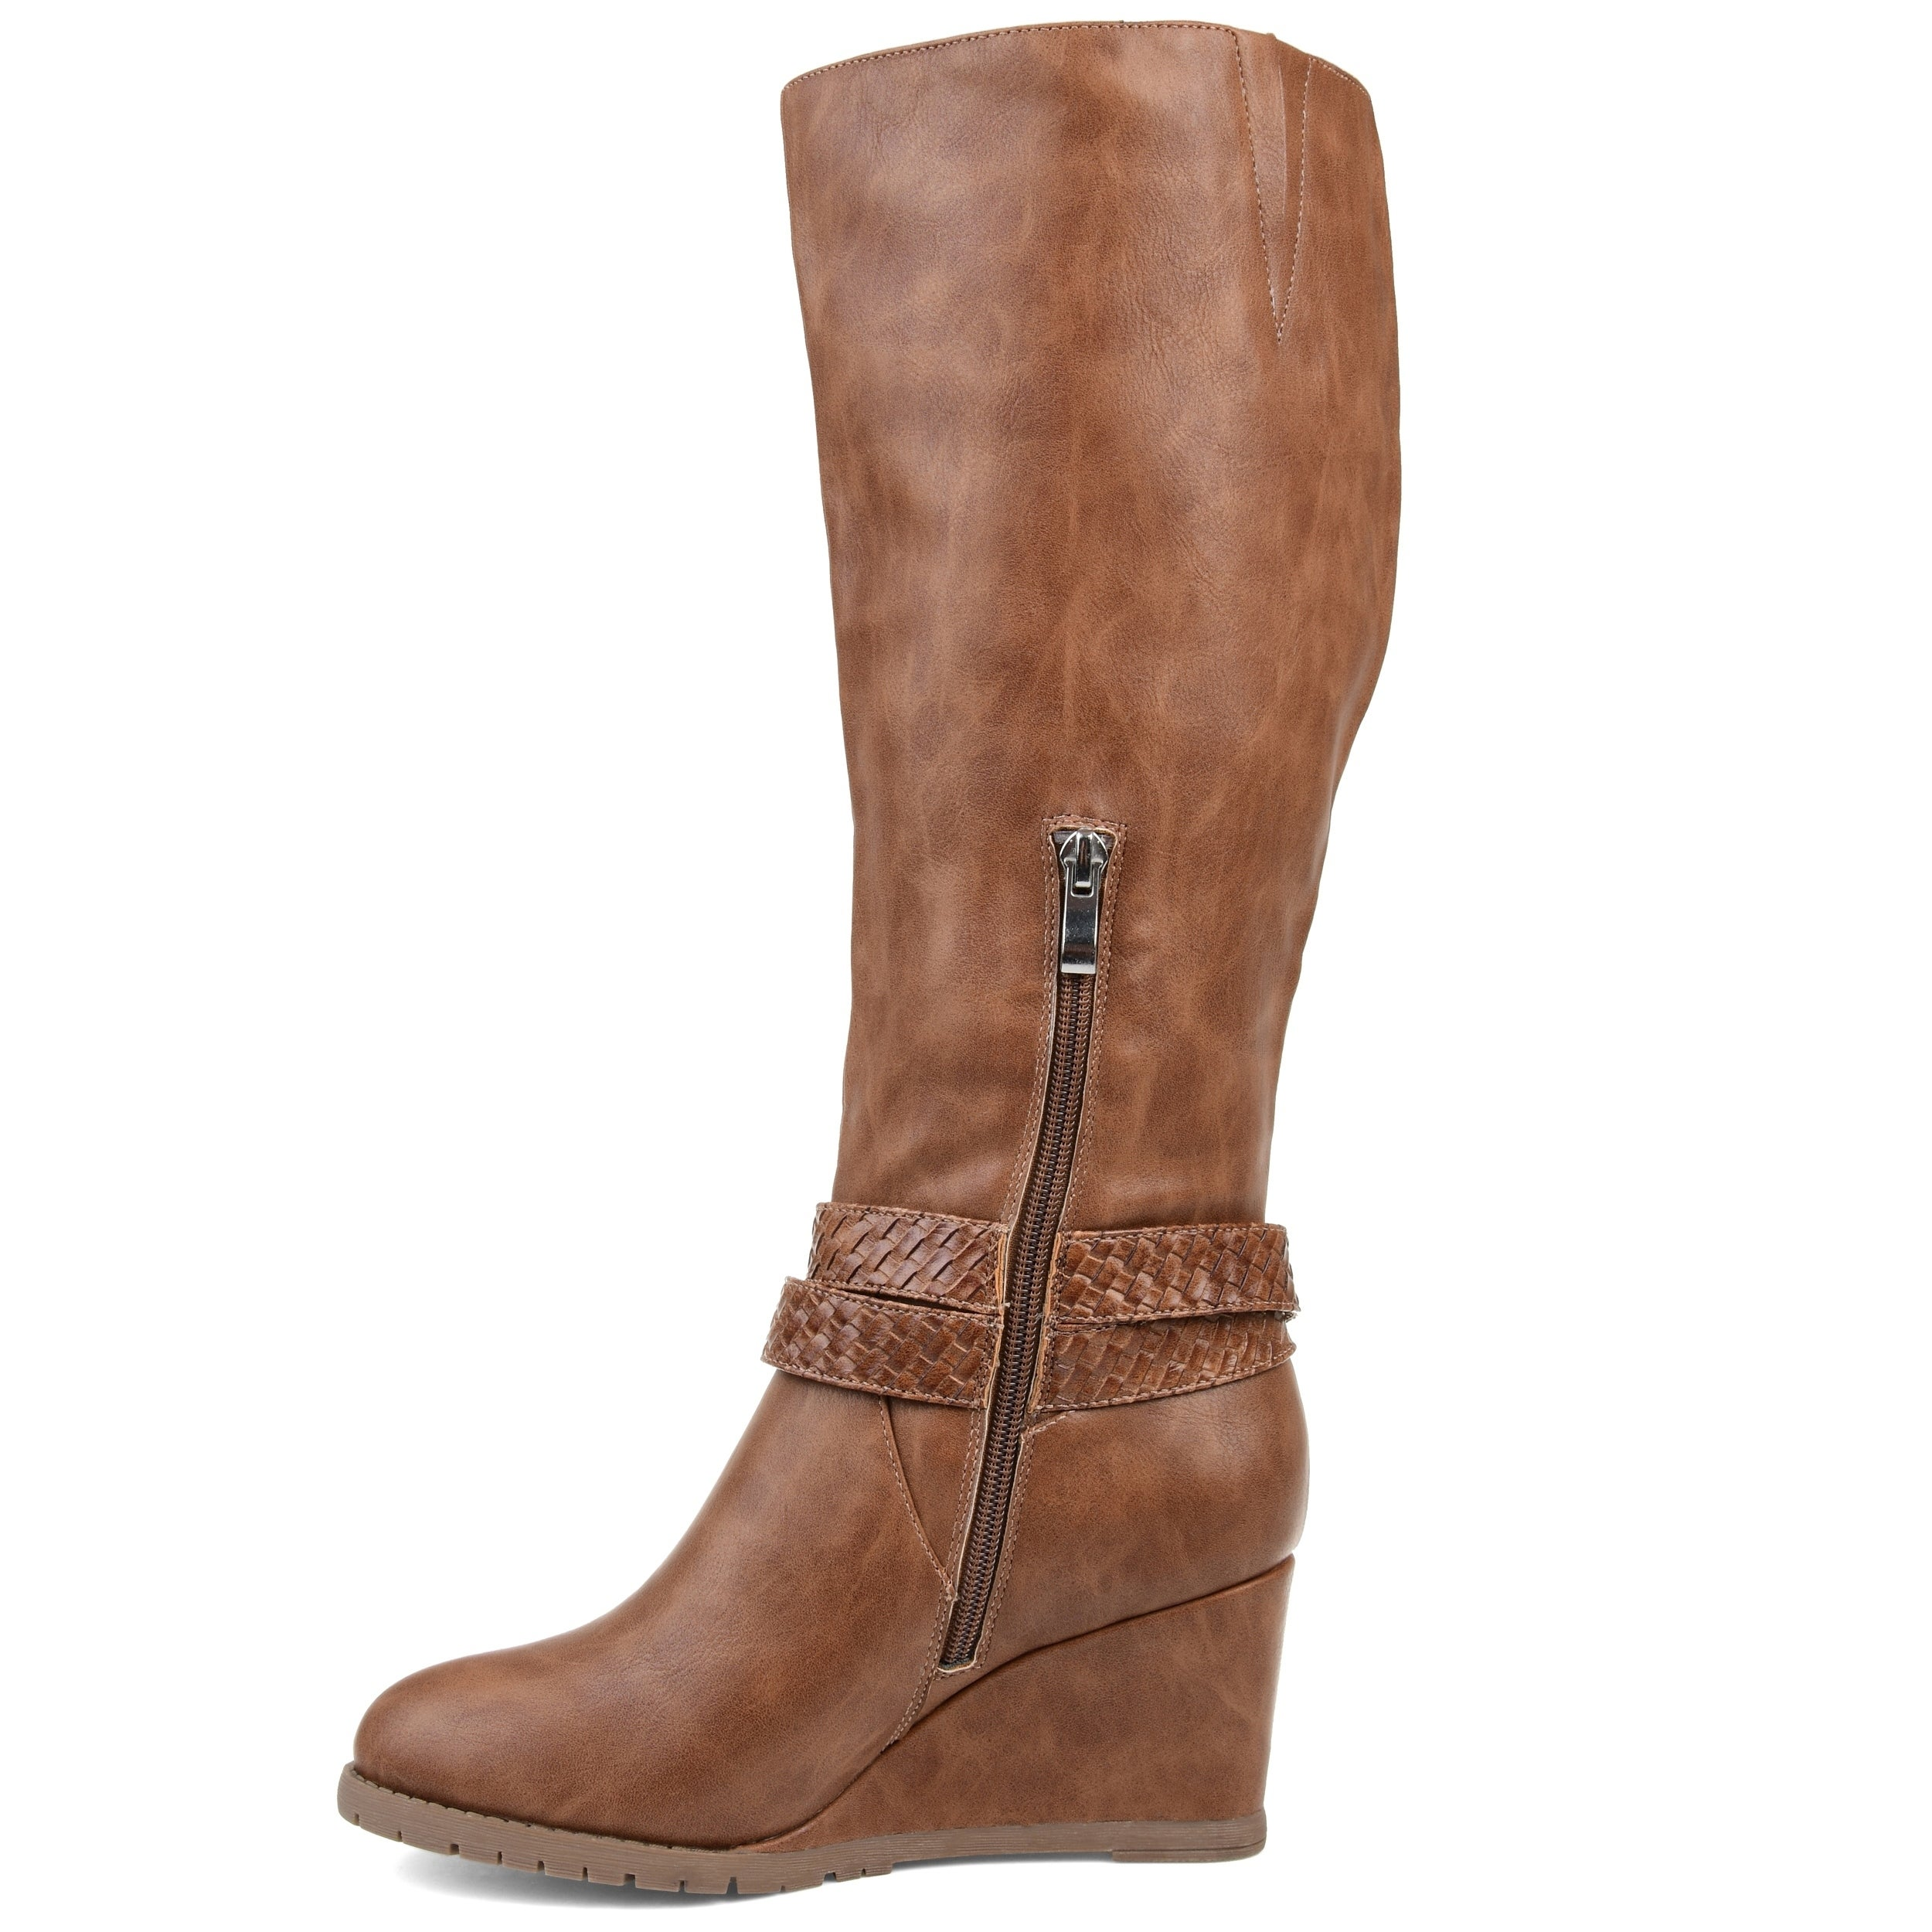 800f8aa54c75 Shop Journee Collection Women s Comfort Garin Boot - On Sale - Free  Shipping Today - Overstock - 23463403